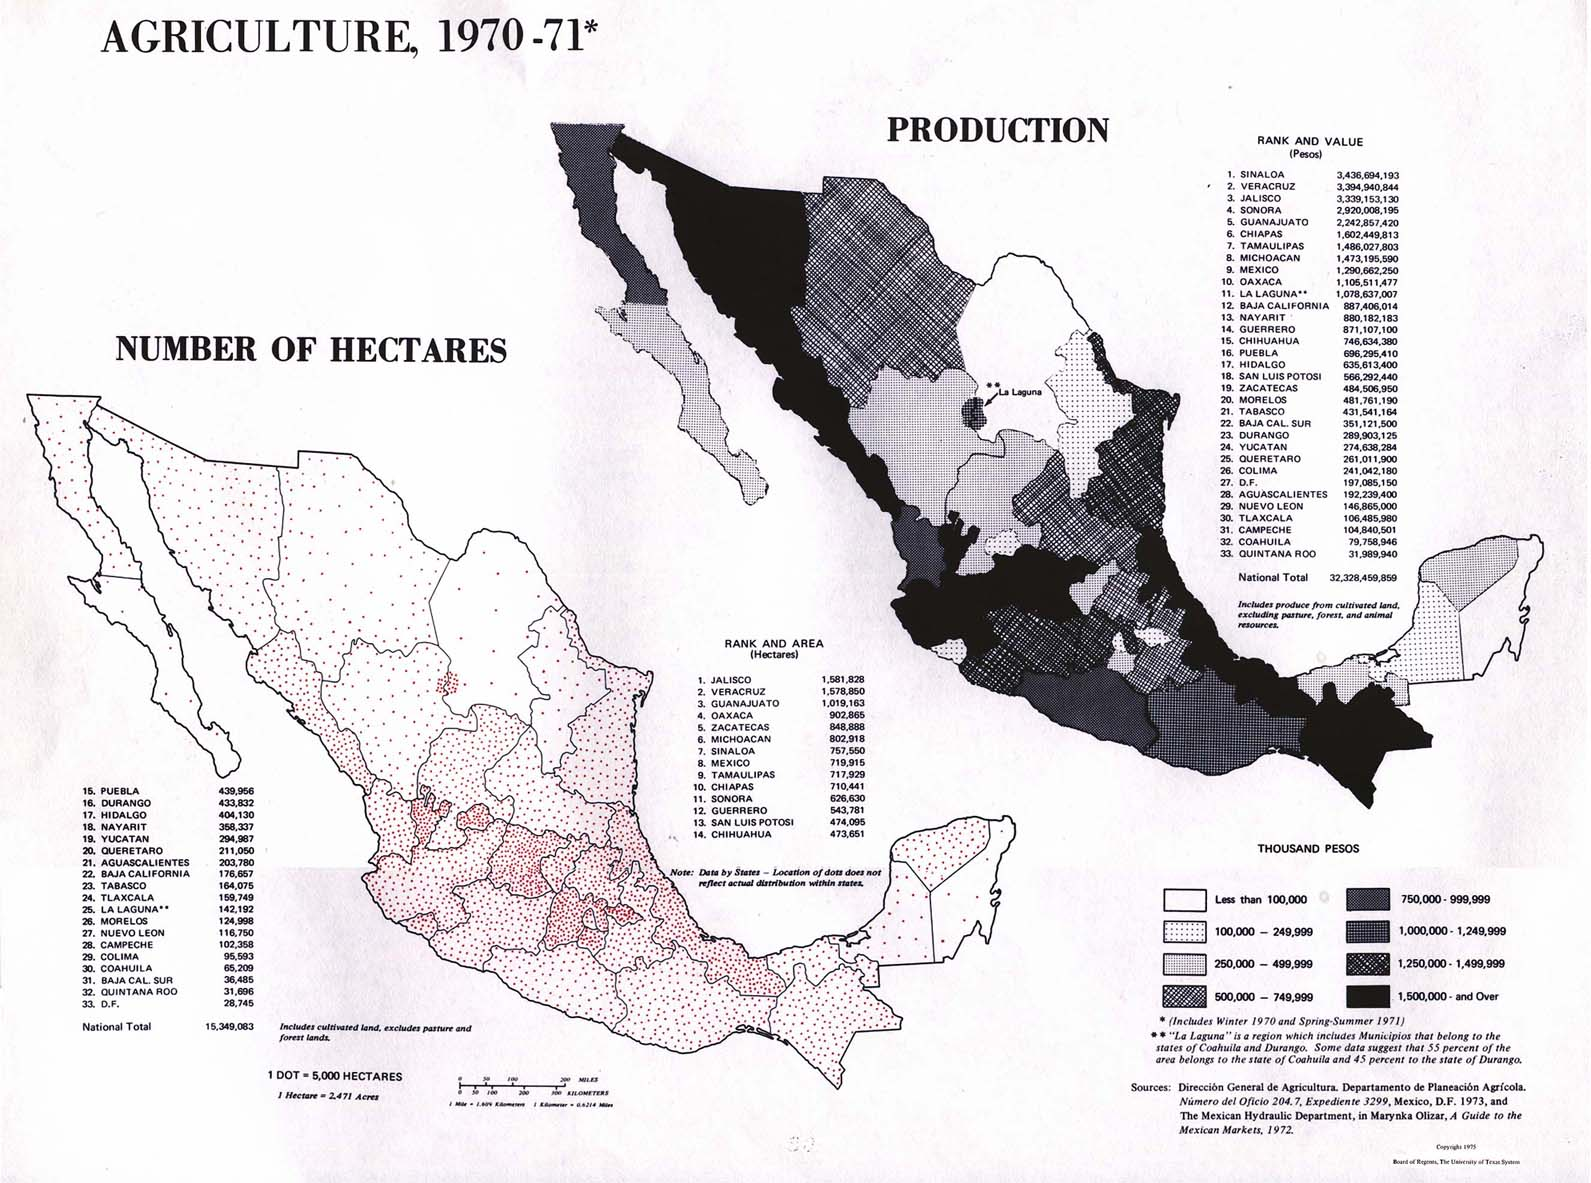 Agriculture 1970 71 Number of Hectares